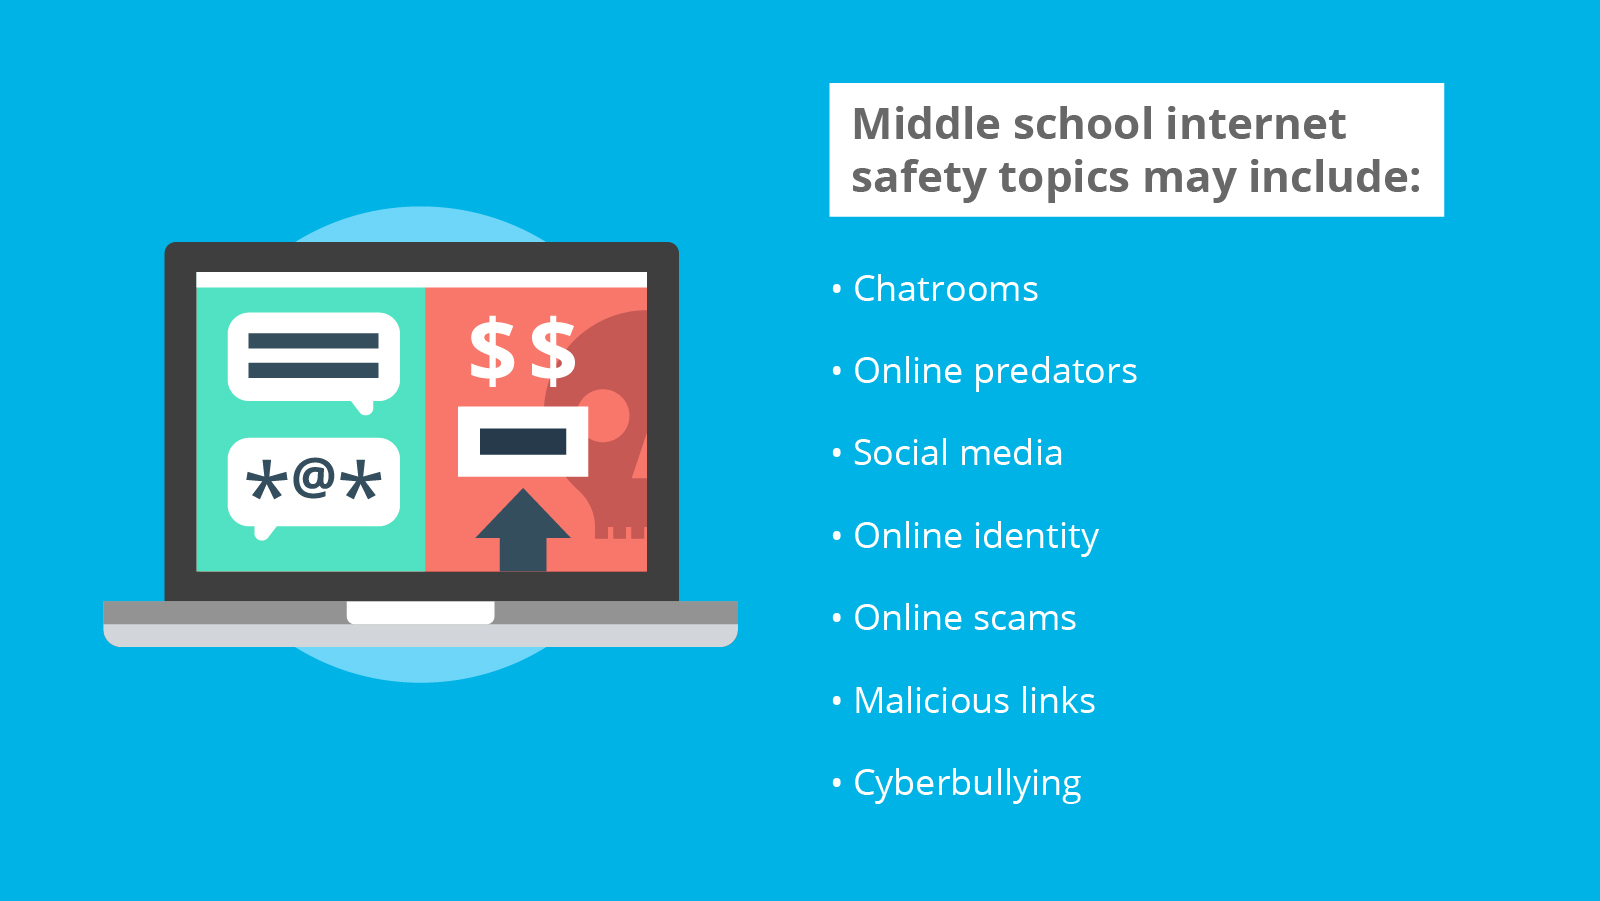 A list of topics to be covered in a middle school internet safety class